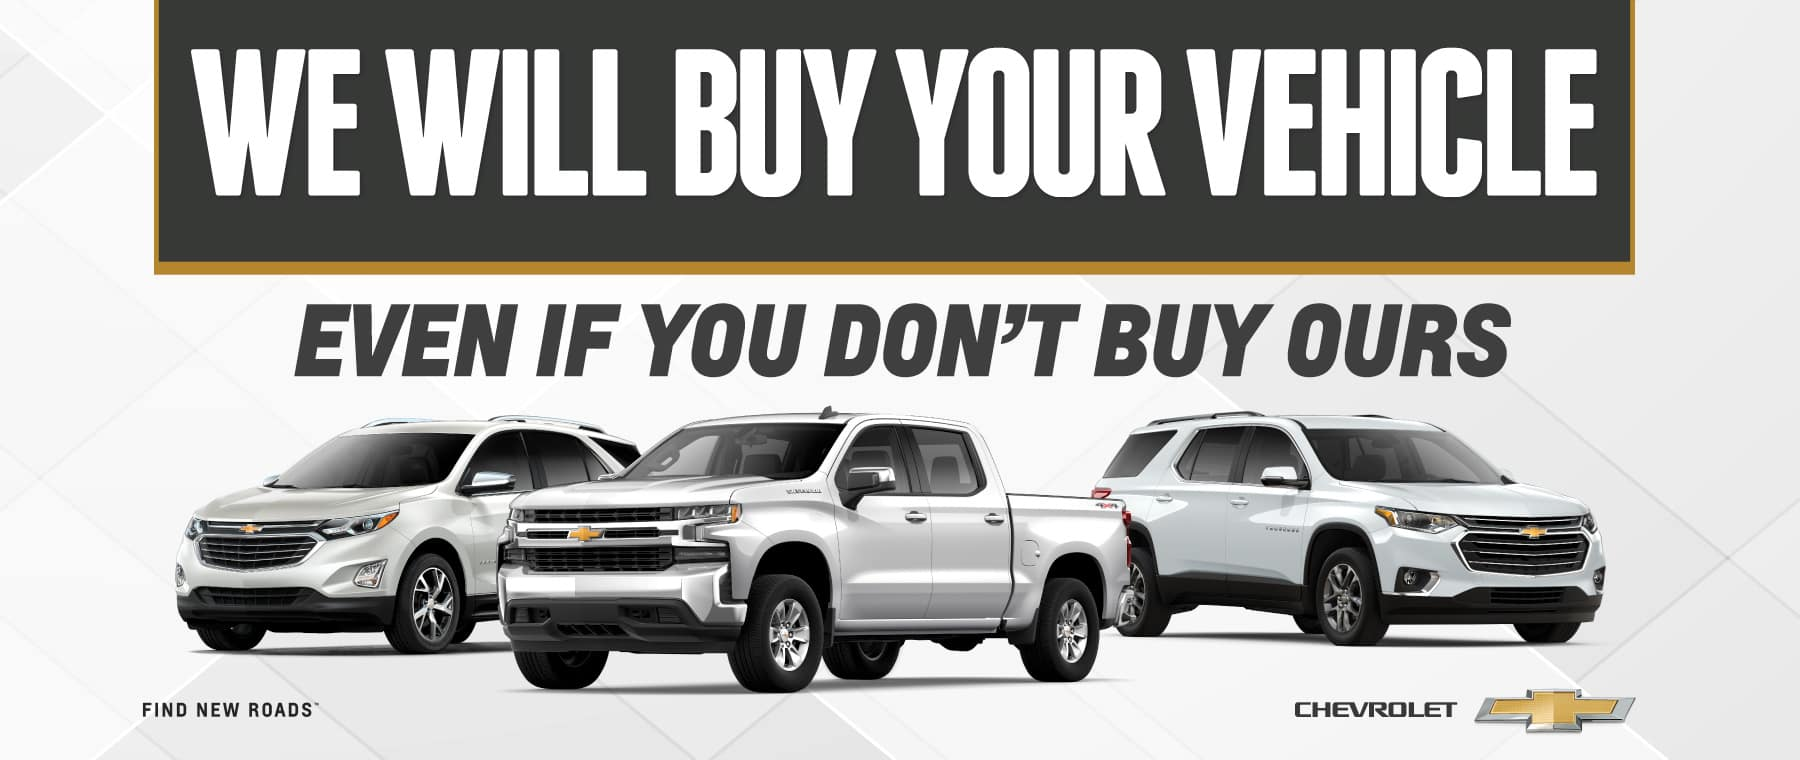 We Will Buy Your Vehicle Even If You Don't Buy Ours - Value Your Trade Now